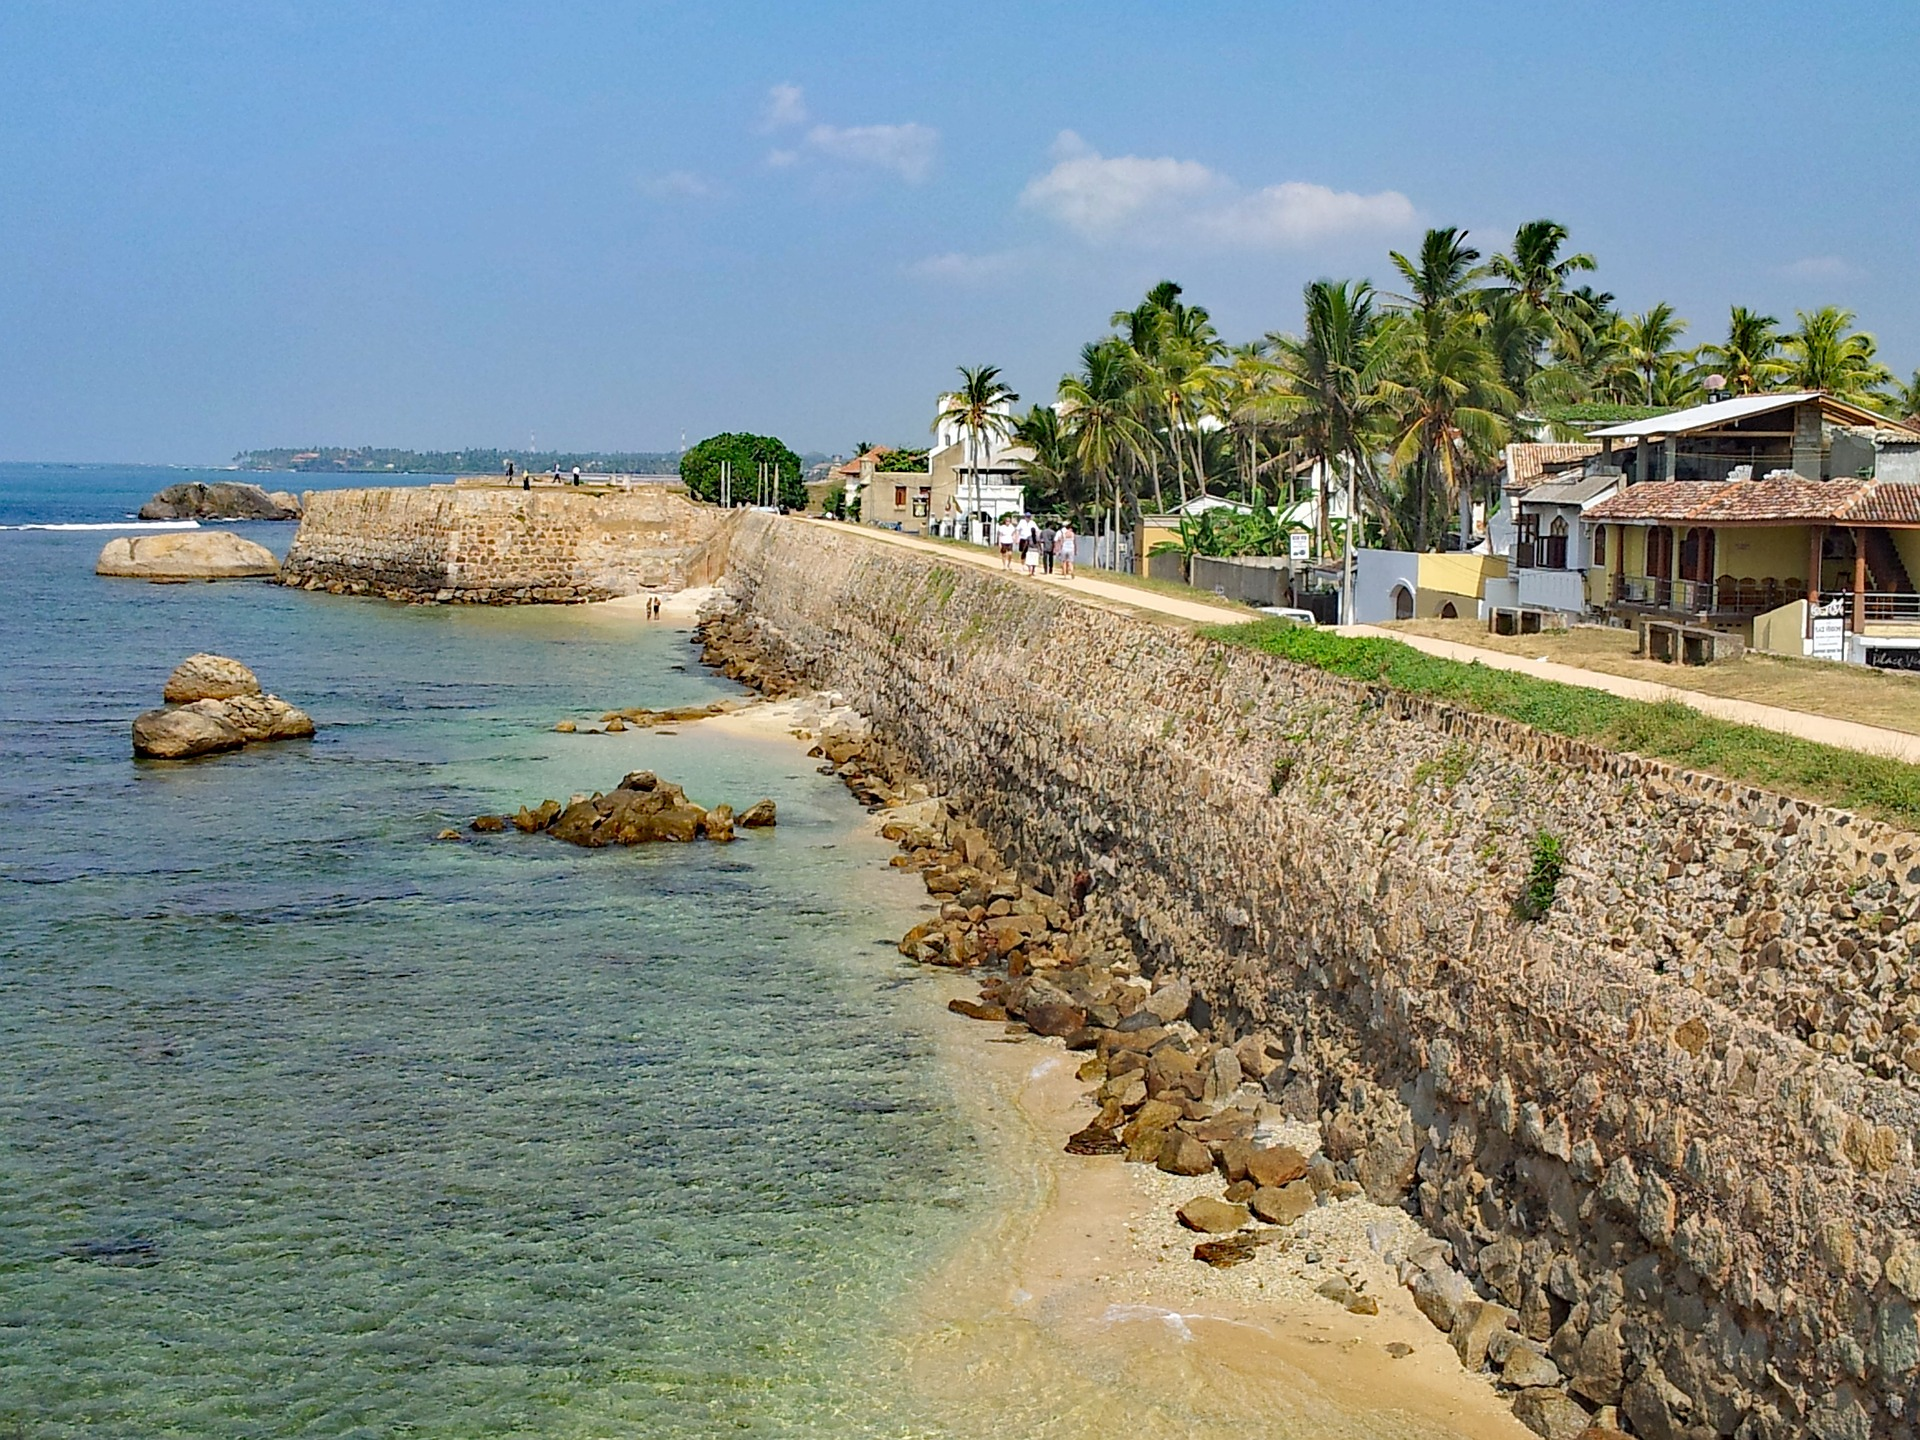 List of the top 10 Places to Visit in Sri-Lanka - Asia Travel